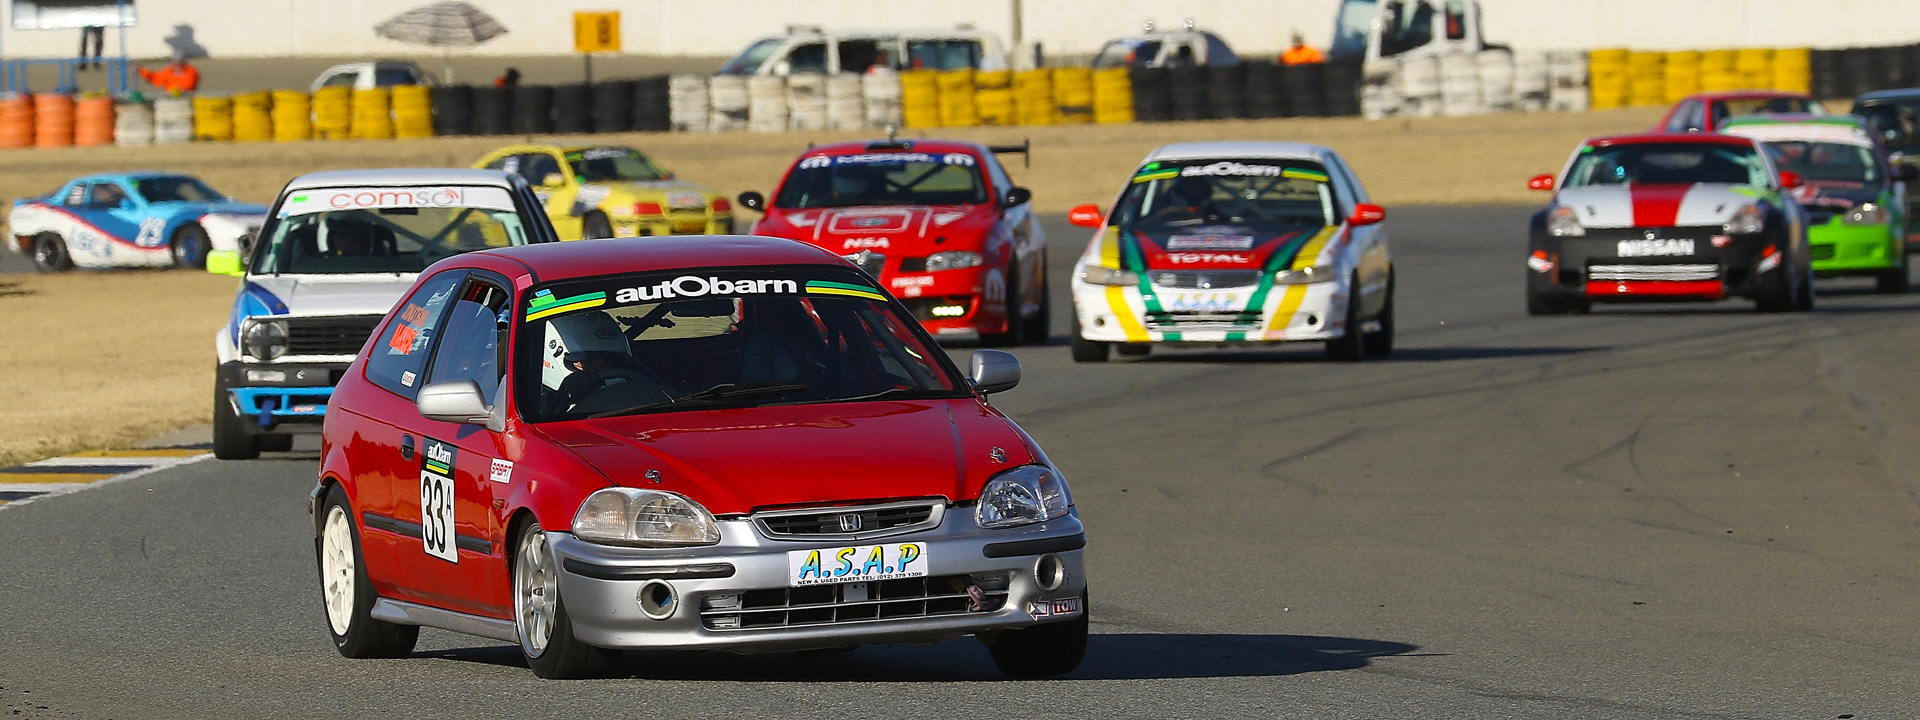 SuperHatch Race Report - Round 5 - 22 July 2017 - Annual Phakisa 200km